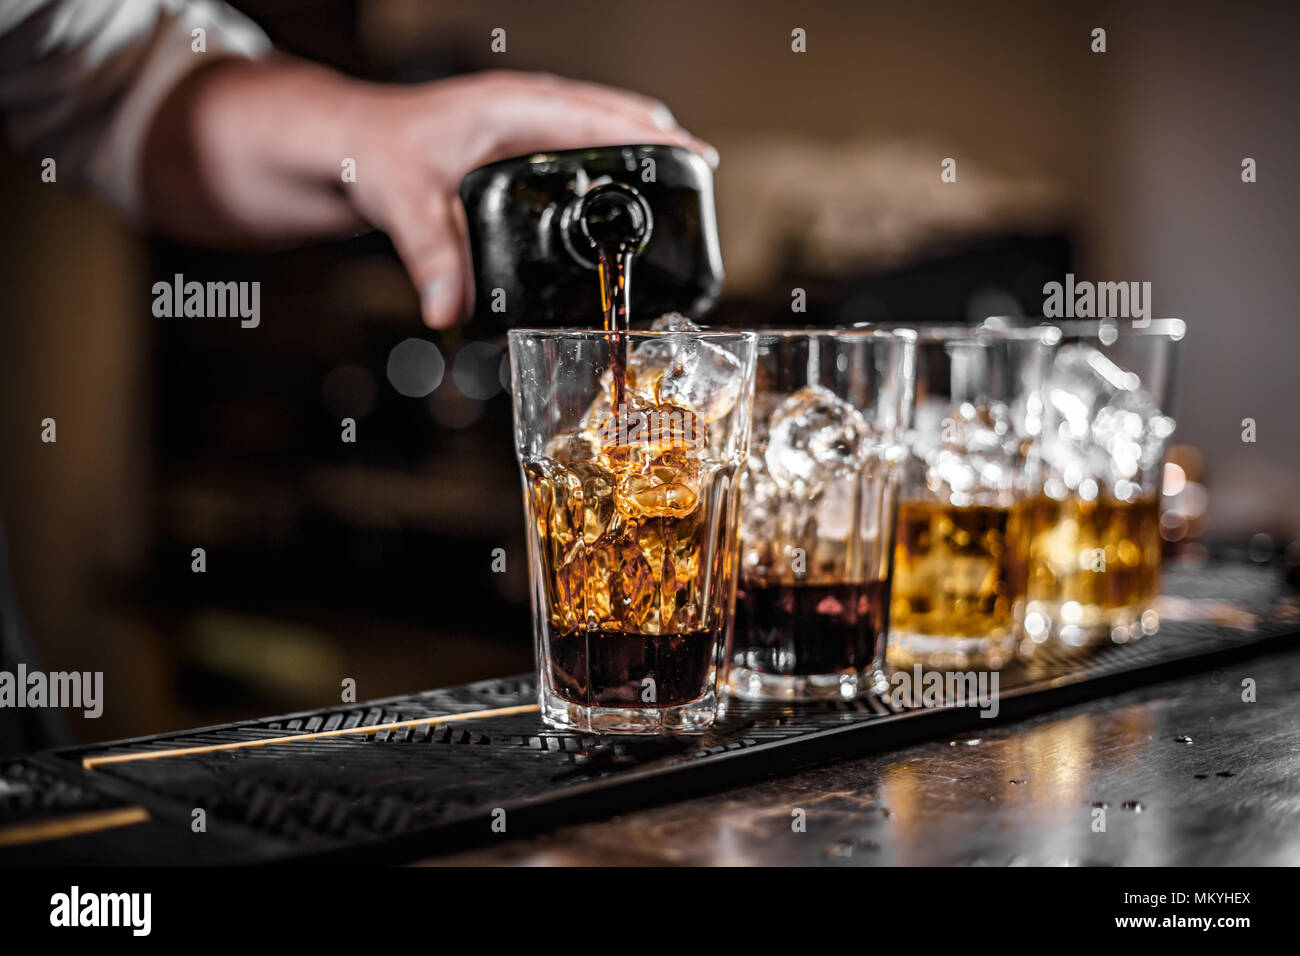 Bartender pouring alcoholic drink in glass - Stock Image